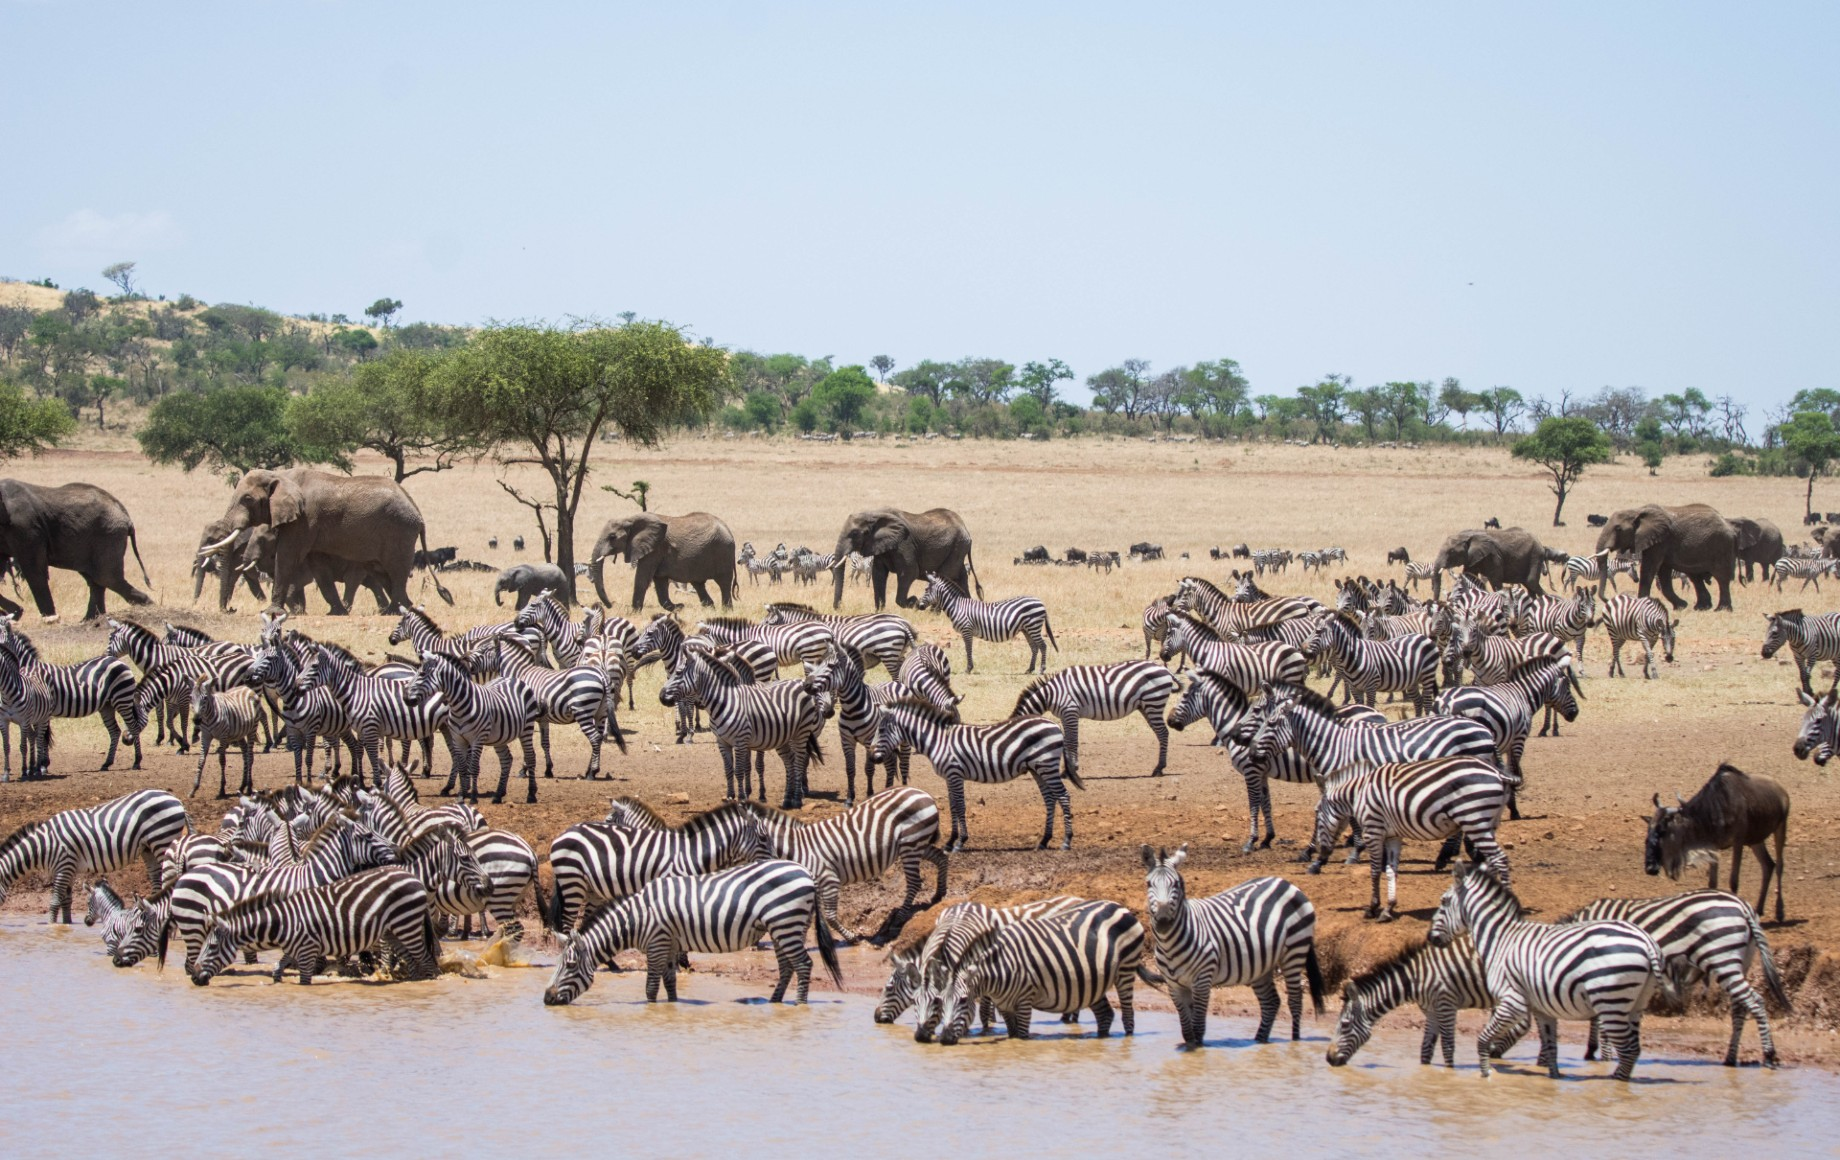 Zebras at a watering hole